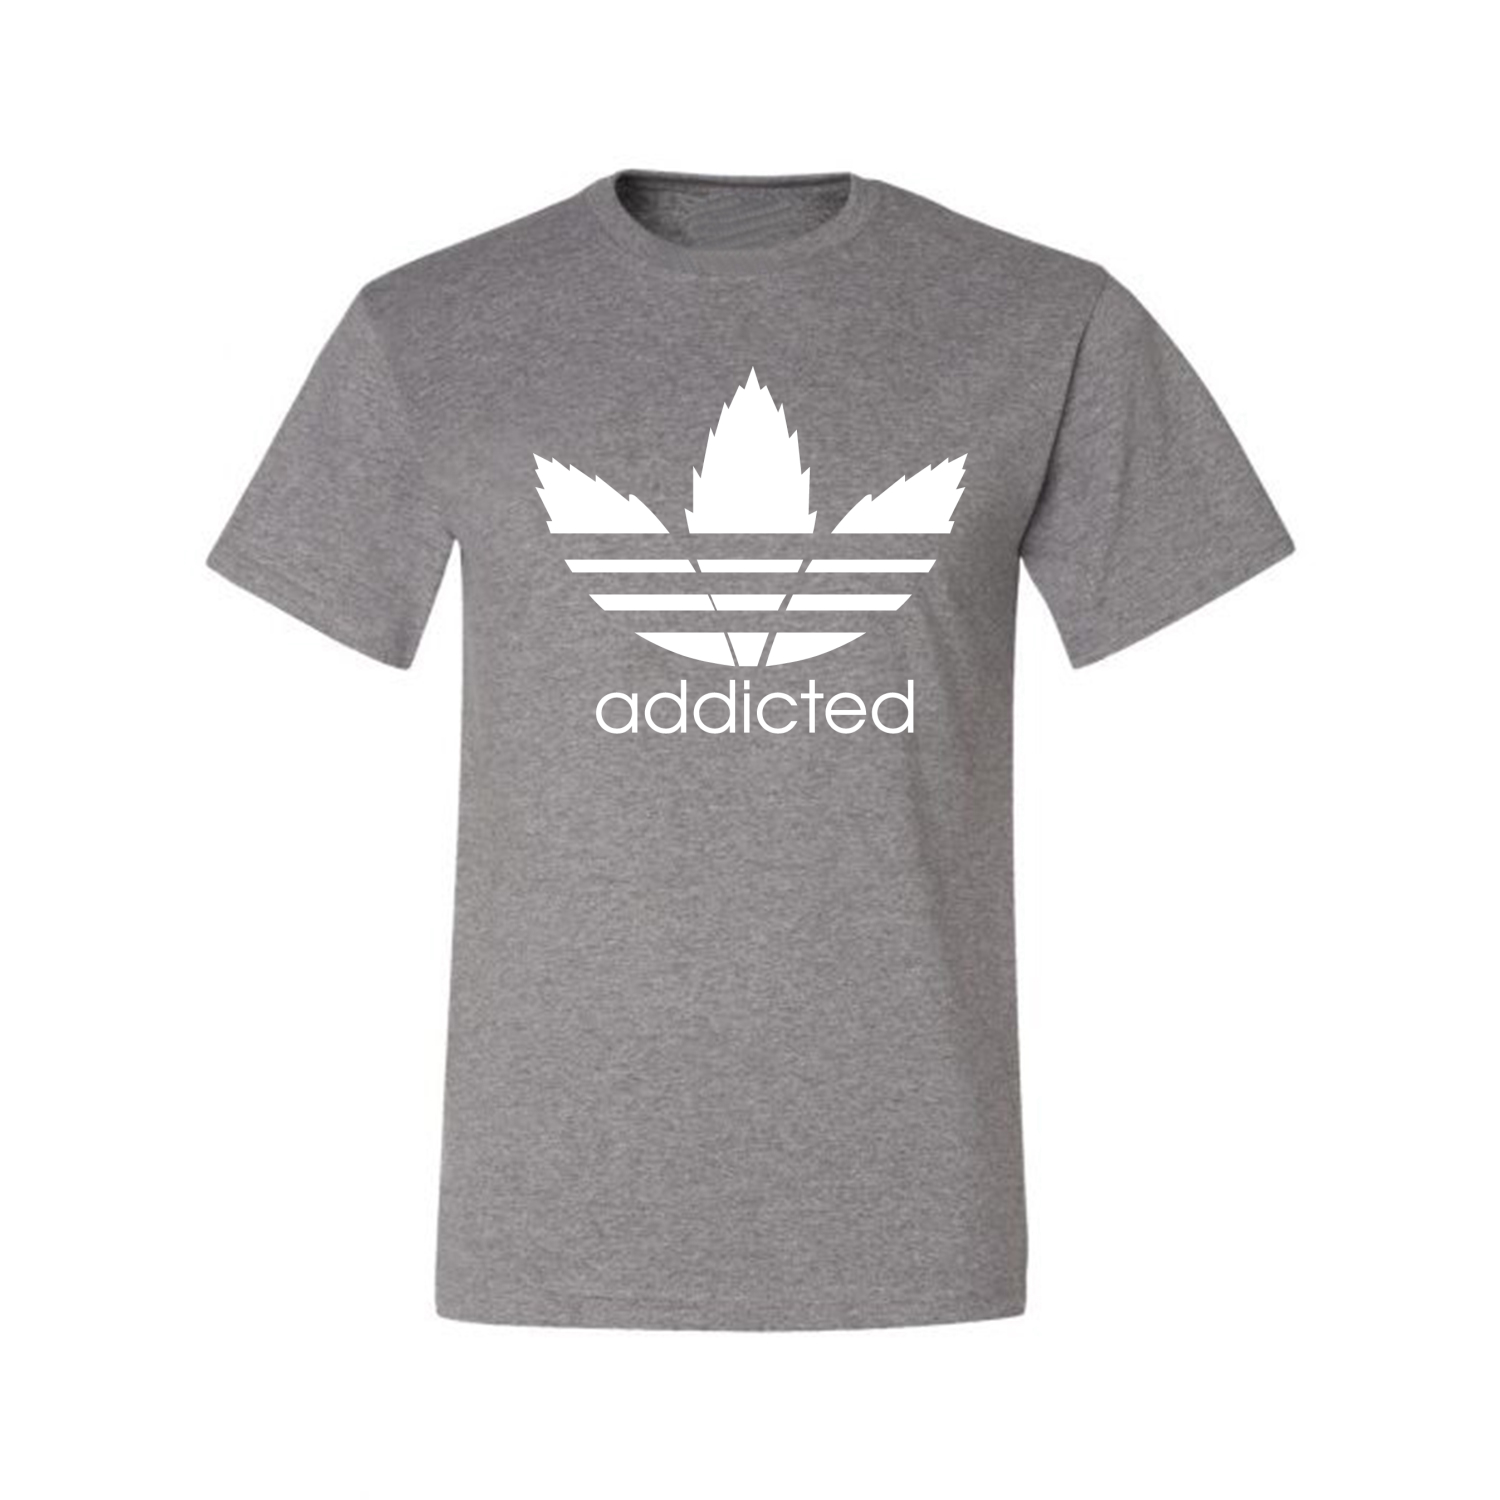 Addicted-White-Pot-Leaf-Mens-Weed-T-Shirt-Graphic-Parody-Tee thumbnail 12